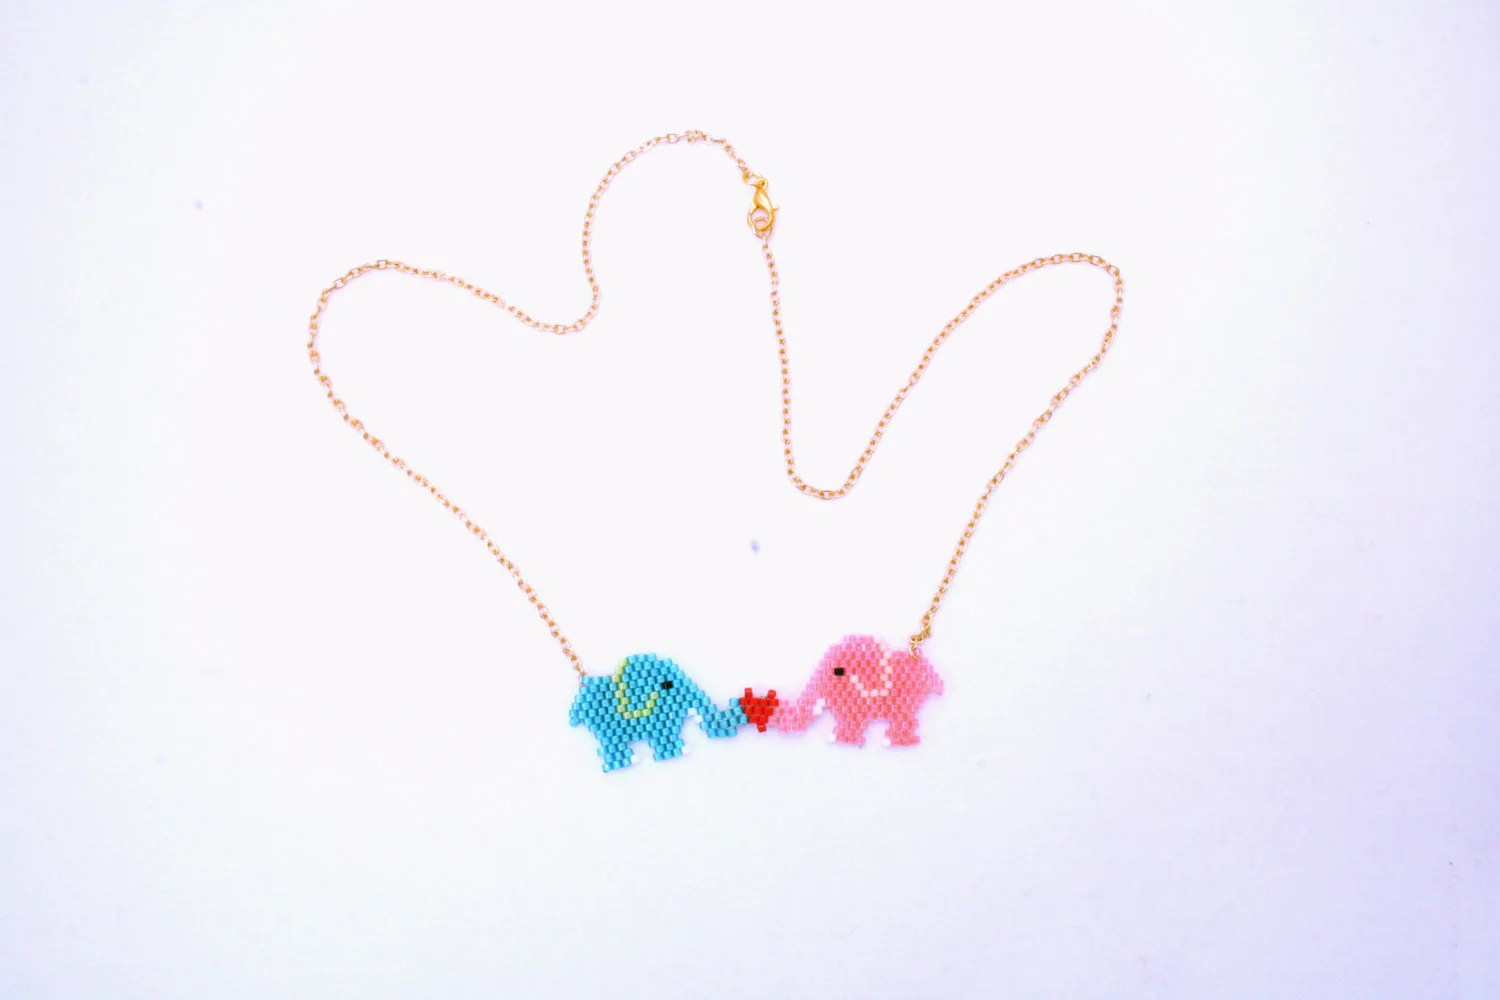 Handmade Unique Beaded Elephant Love Necklace Gifts For Her